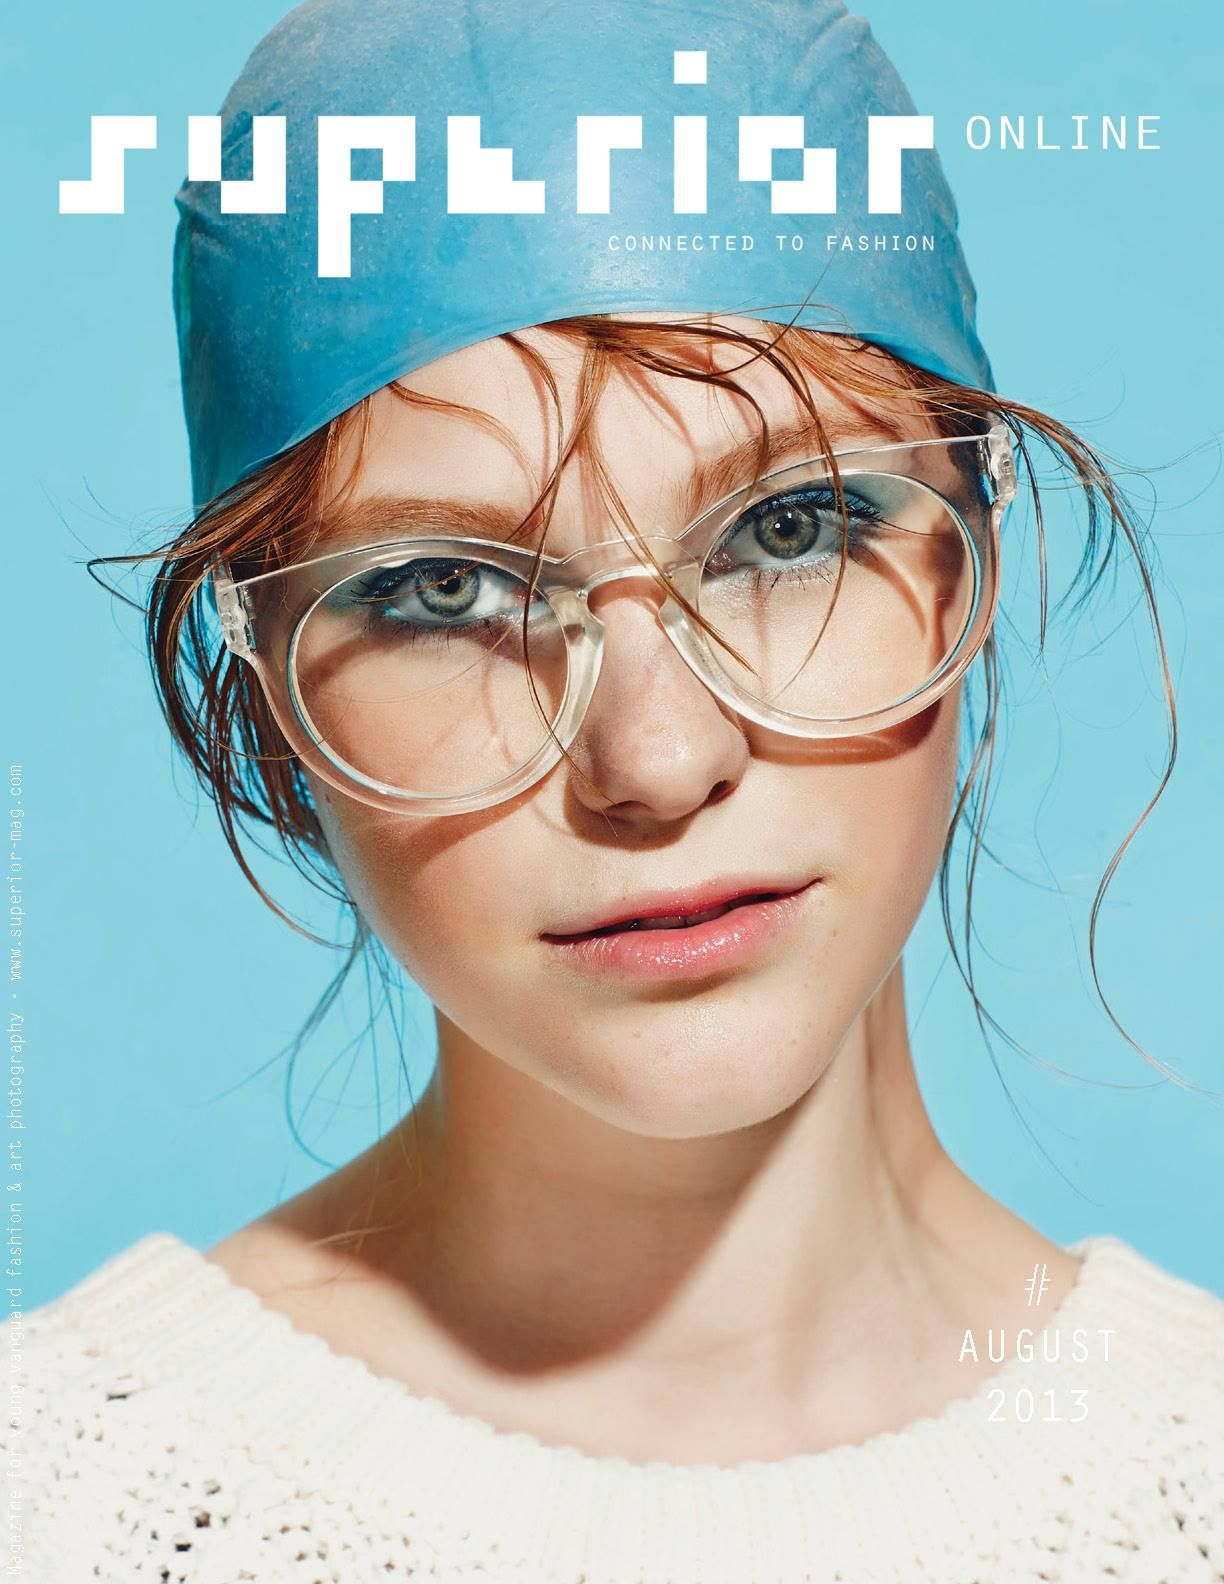 SUPERIOR ONLINE August 2013   August 2013 and Magazine covers